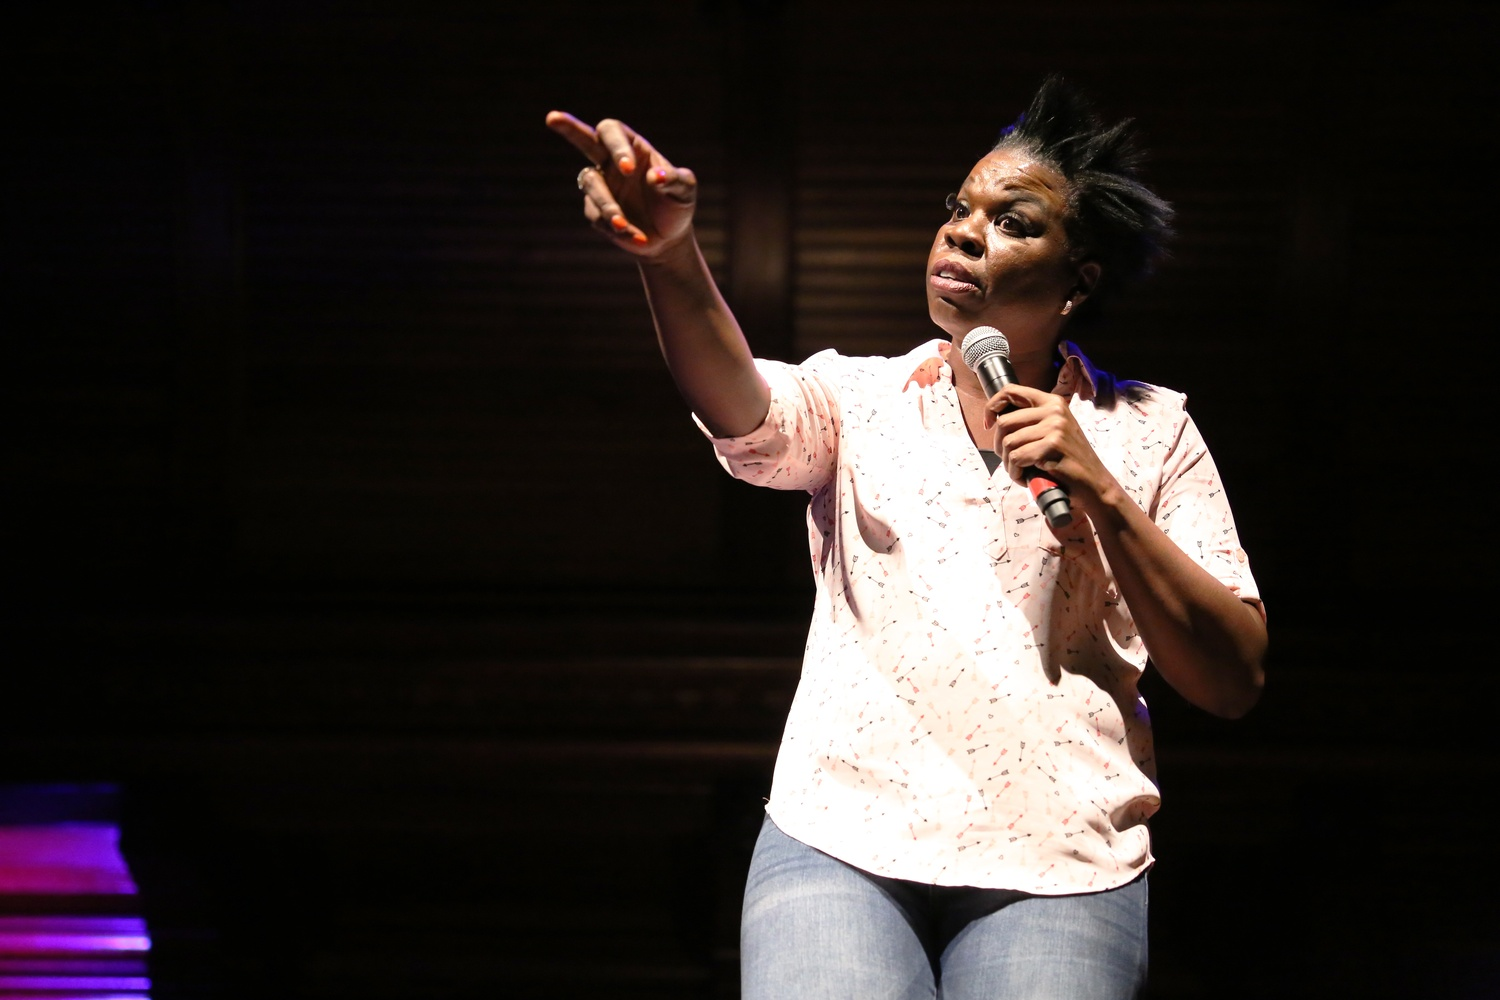 Leslie Jones, a cast member and writer for Saturday Night Live, performs in Sanders Theater on Friday night.